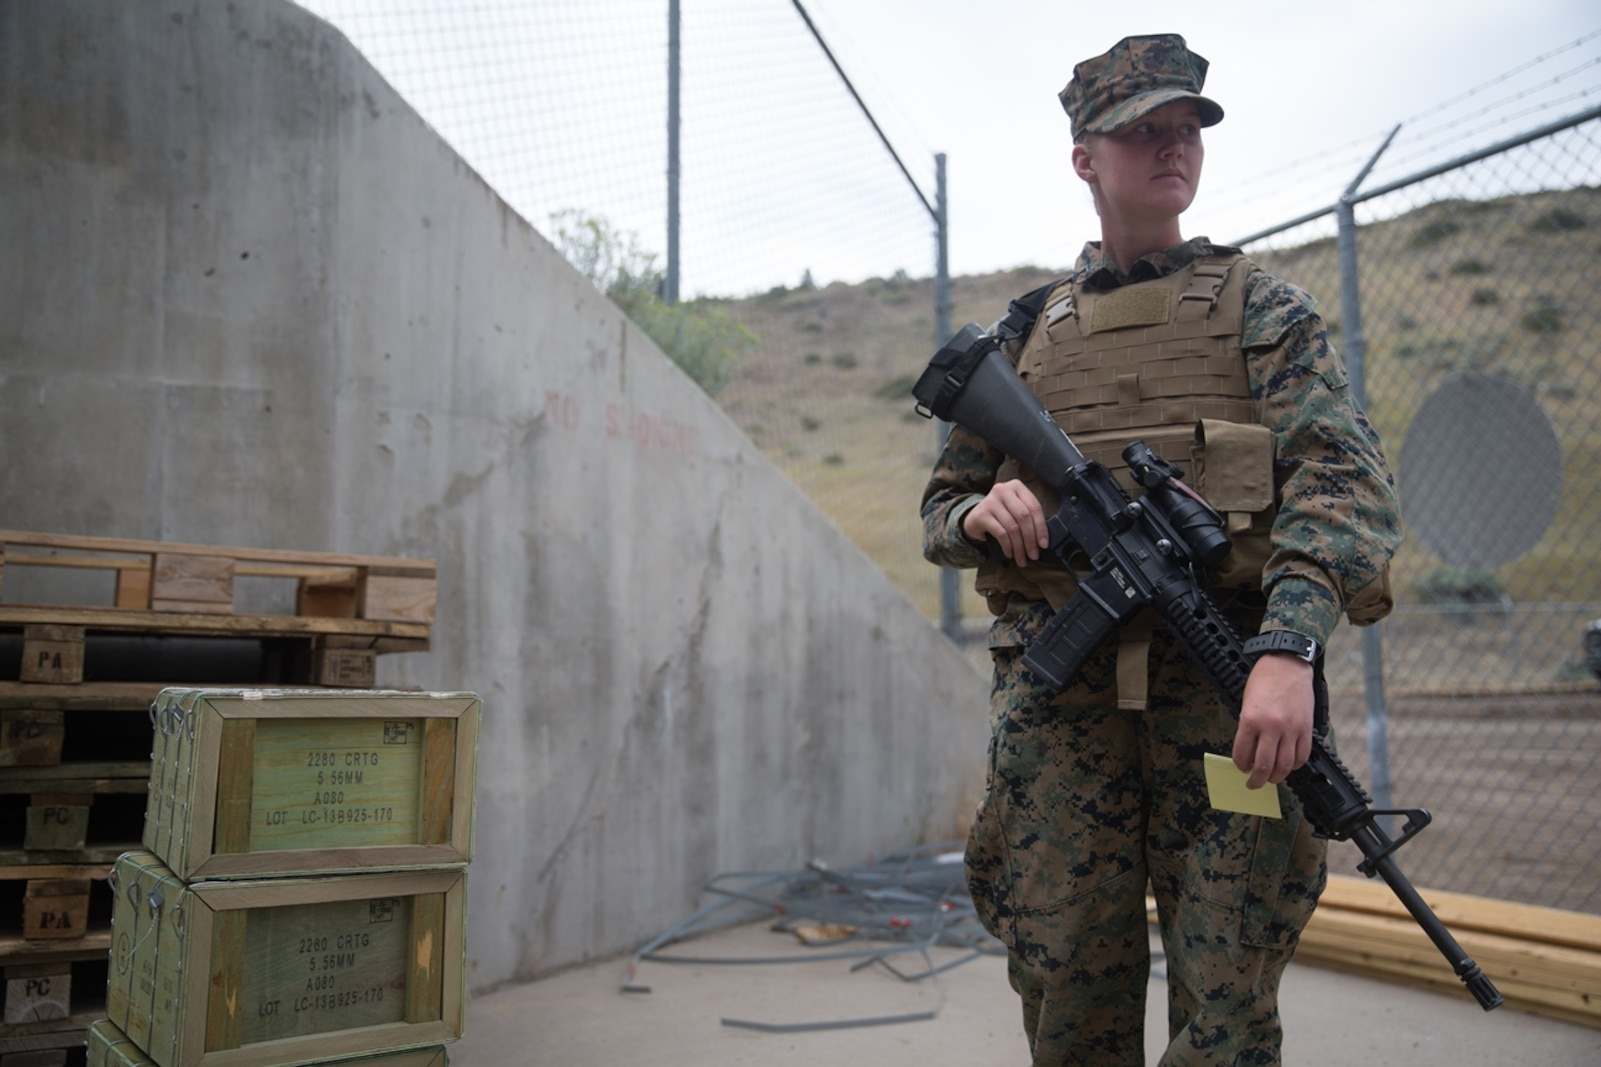 U.S. Marine Pfc. Olivia Rutherford, an ammunition technician with Combat Logistics Battalion 5, Combat Logistics Regiment 1, 1st Marine Logistics Group, receives blank ammunition during a field operation while participating in Mountain Training Exercise 4-17 at Marine Corps Mountain Warfare Training Center, August 3, 2017. Blank ammunition are rounds without projectiles and are used for training purposes only. (U.S. Marine Corps photo by Lance Cpl. Timothy Shoemaker)